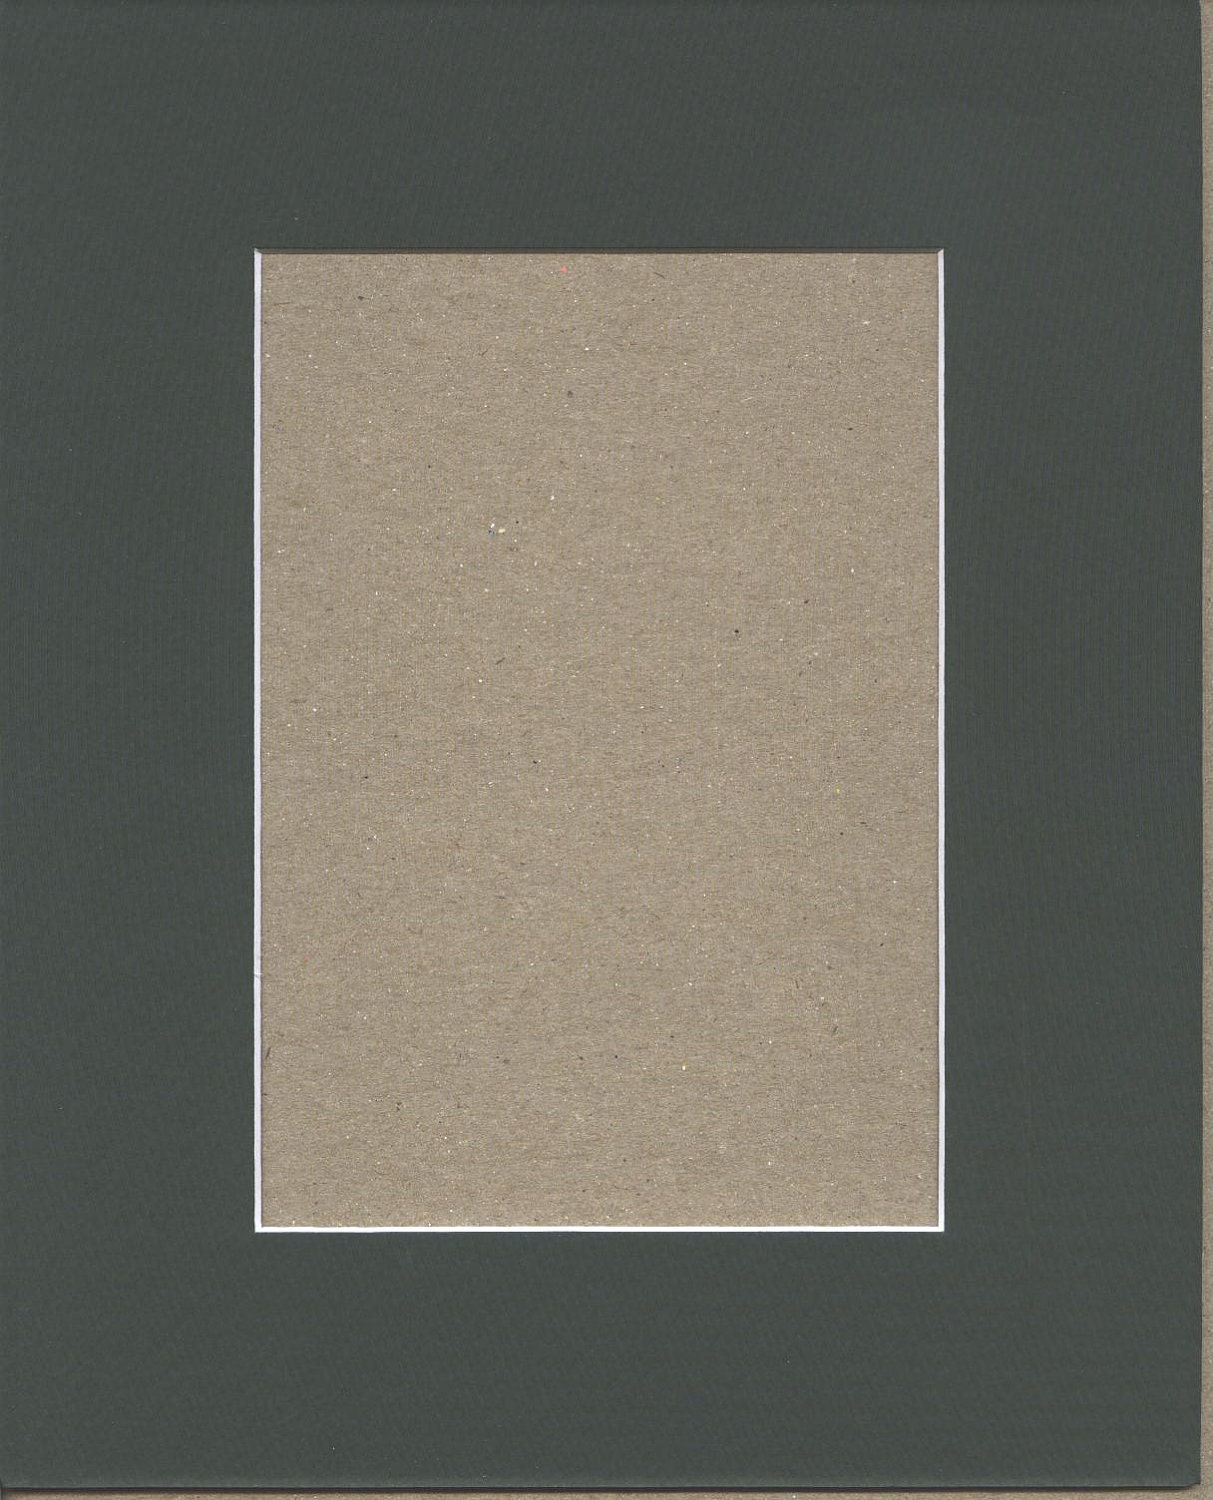 Package Of 5 16x20 Pine Green Mats With White Core Bevel